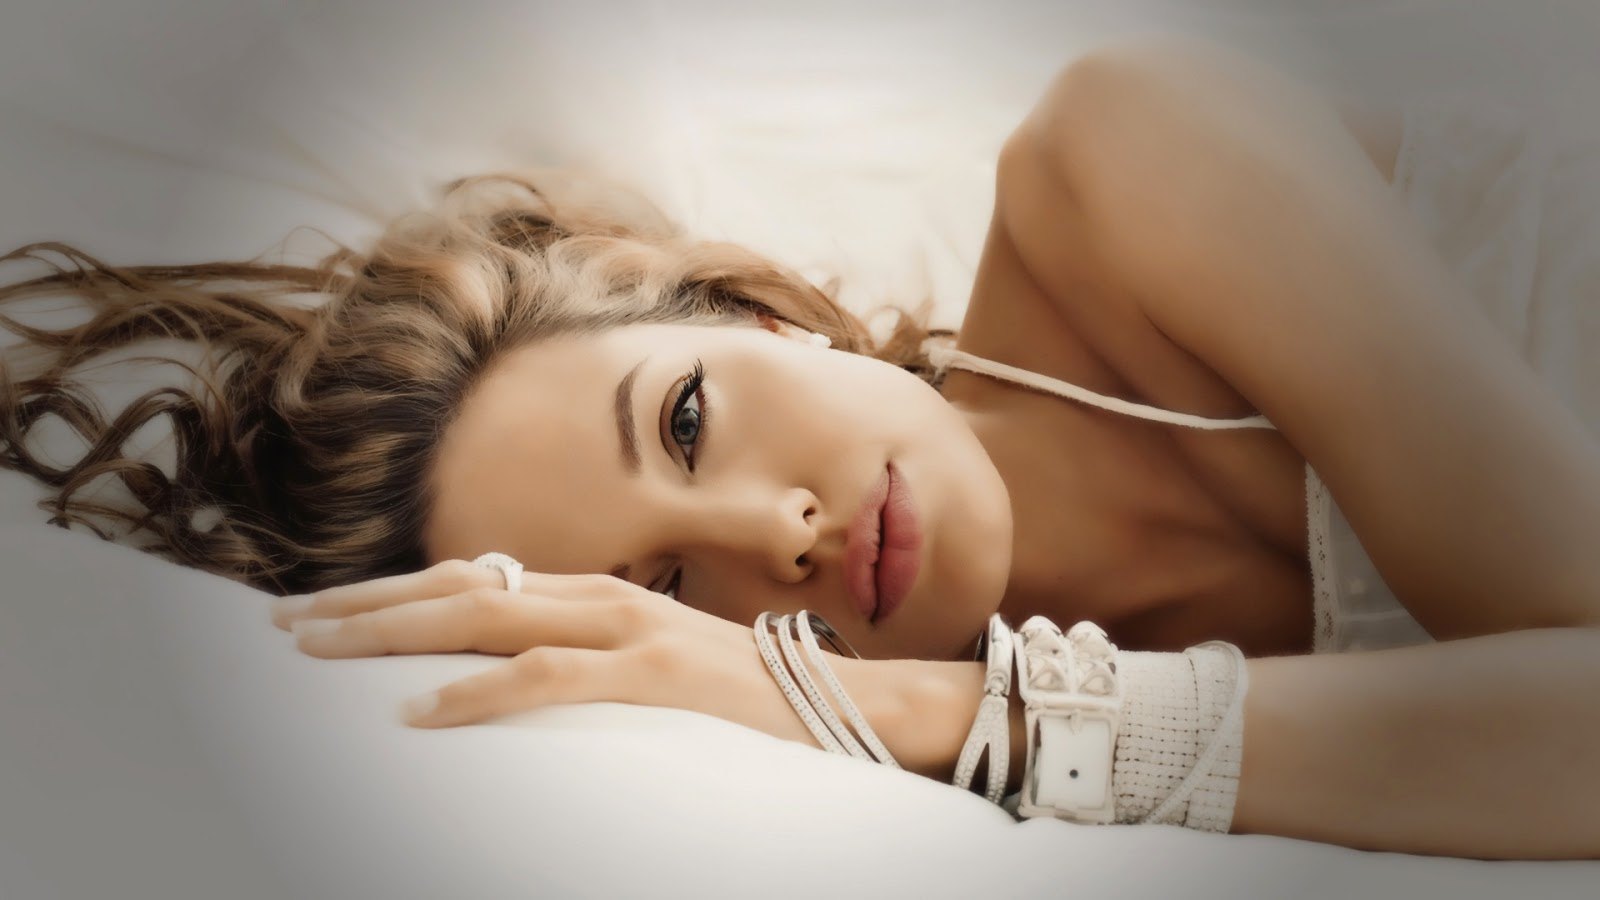 Hollywood Actress Angelina Jolie sleeping in bedroom photos